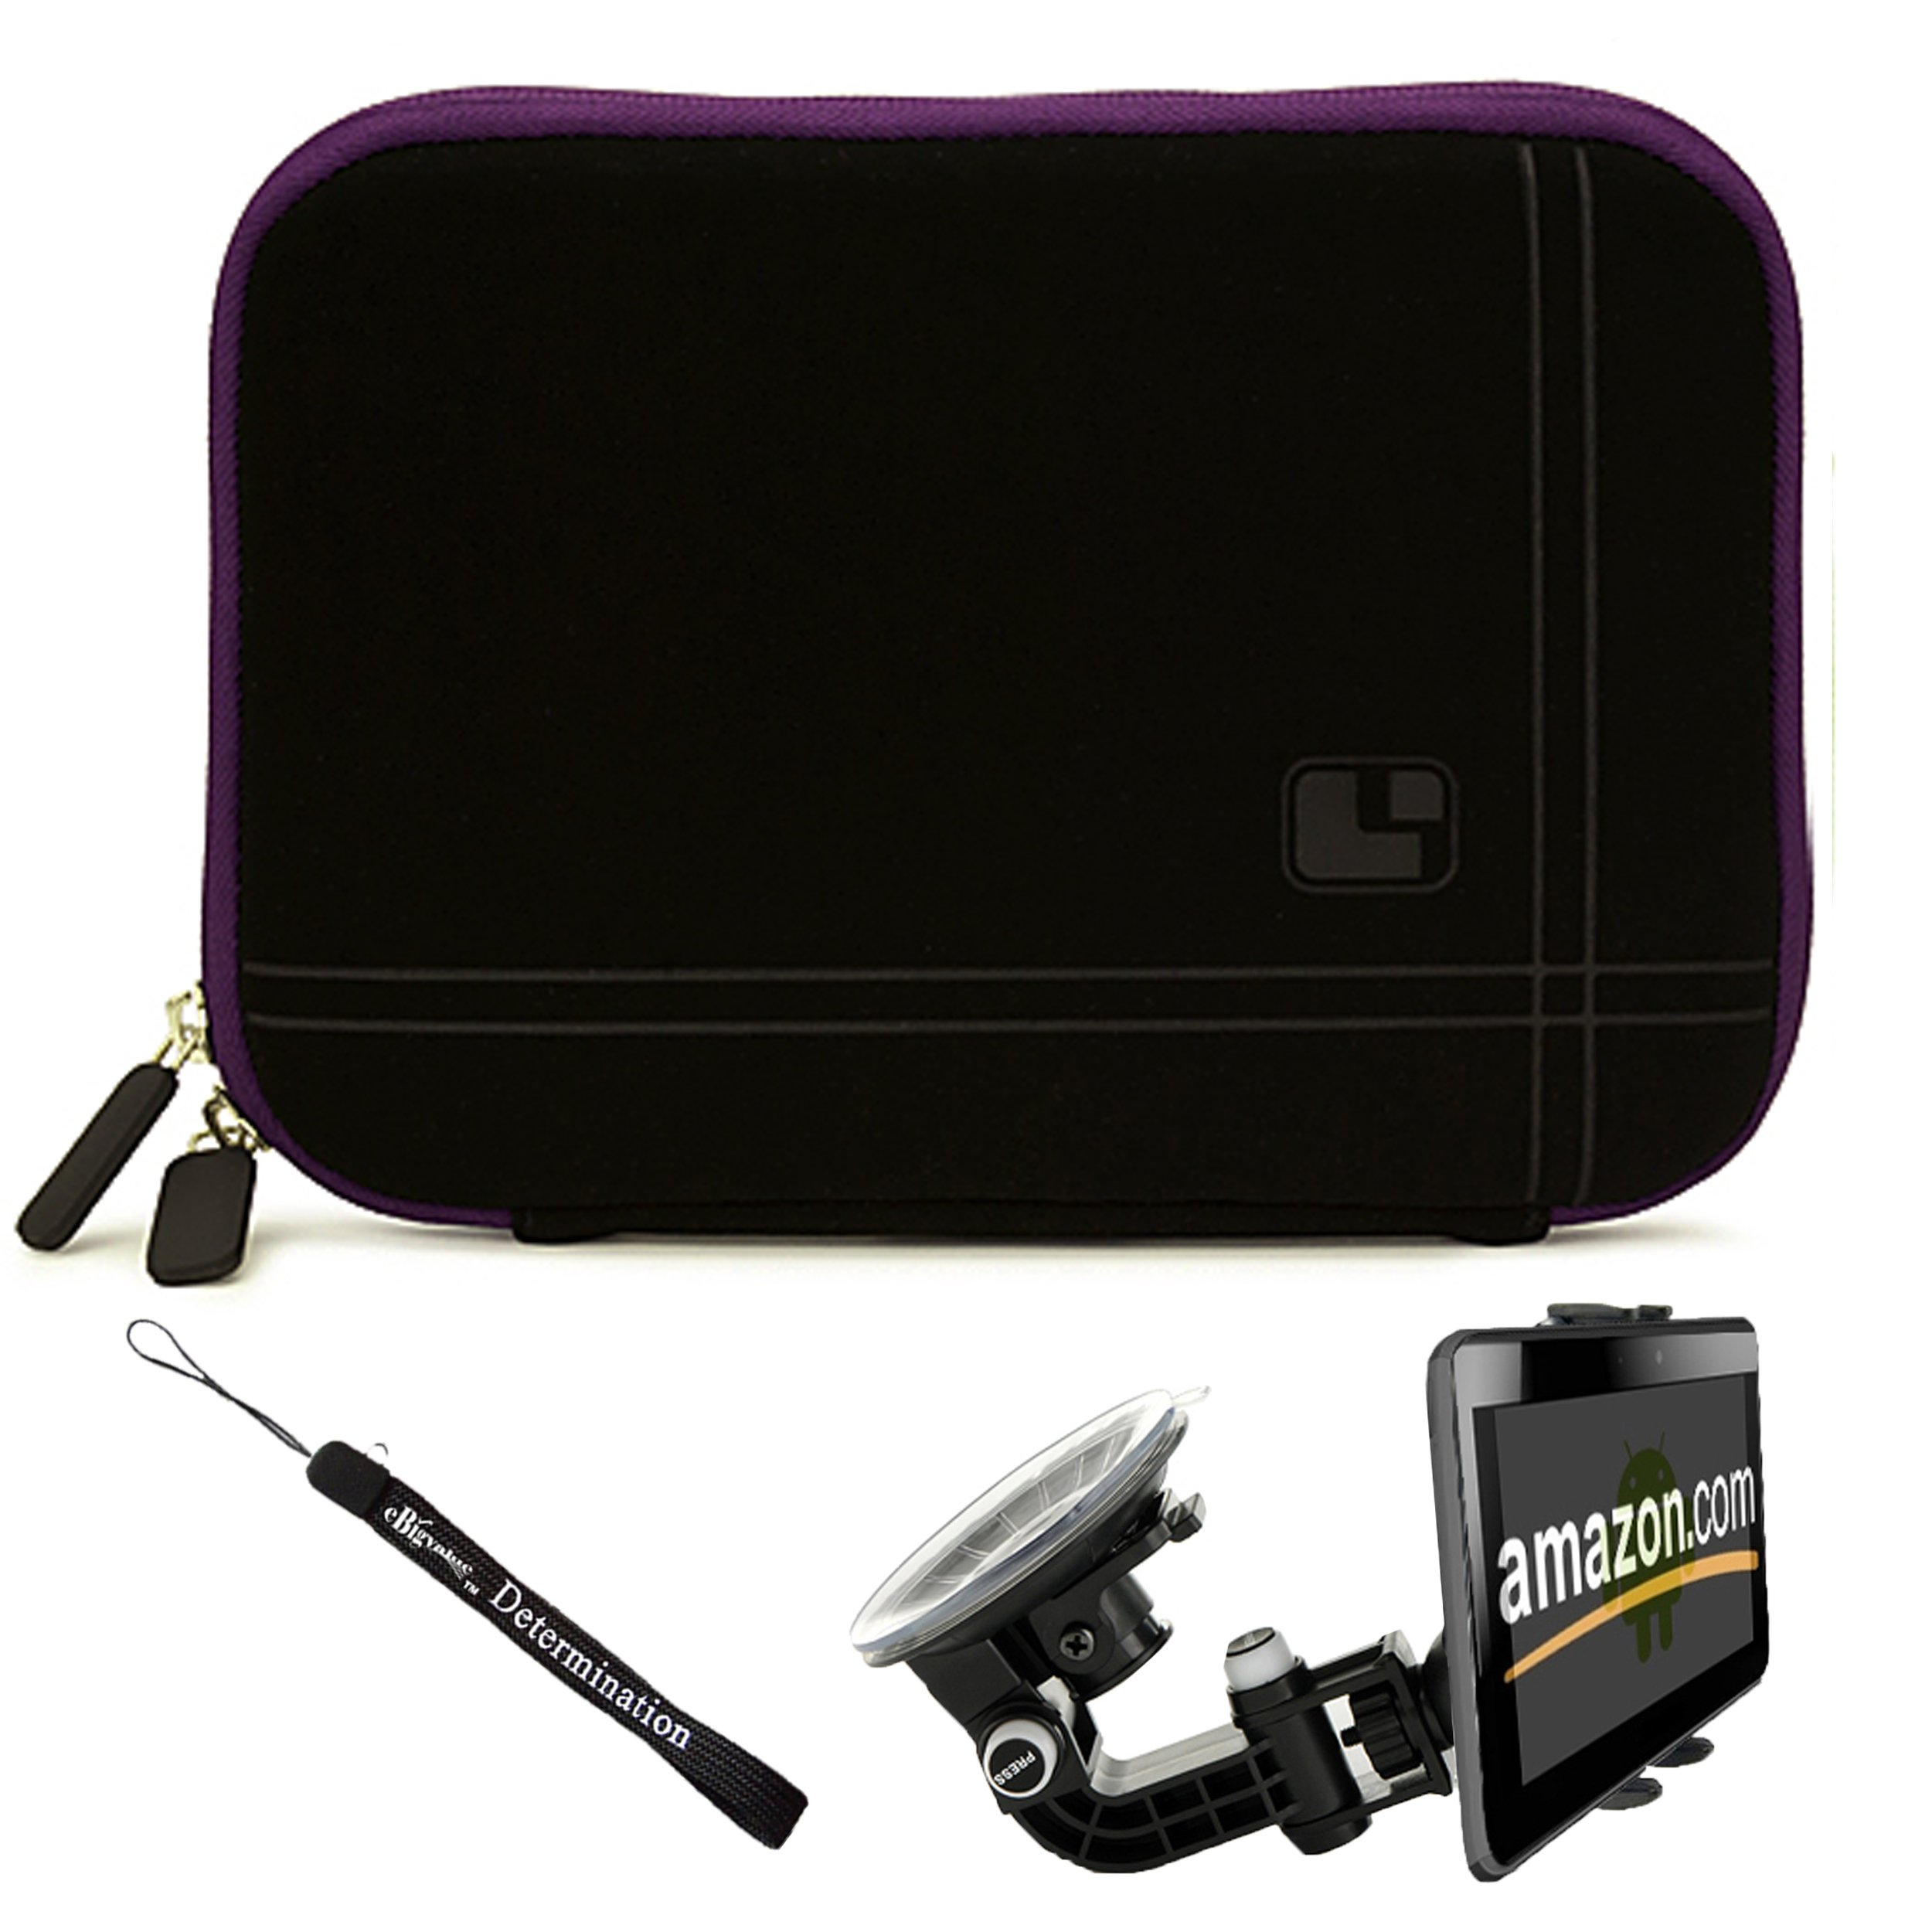 Black - Purple Trim Slim Protective Soft Neoprene Cover Carrying Case Sleeve with Extra Pocket // Fits Anywhere// For Amazon Kindle Fire Full Color 7'' Multi-touch Display, Wi-Fi (Newest Tablet) + Includes a Compatible Universal Windshield Mount for Kindle